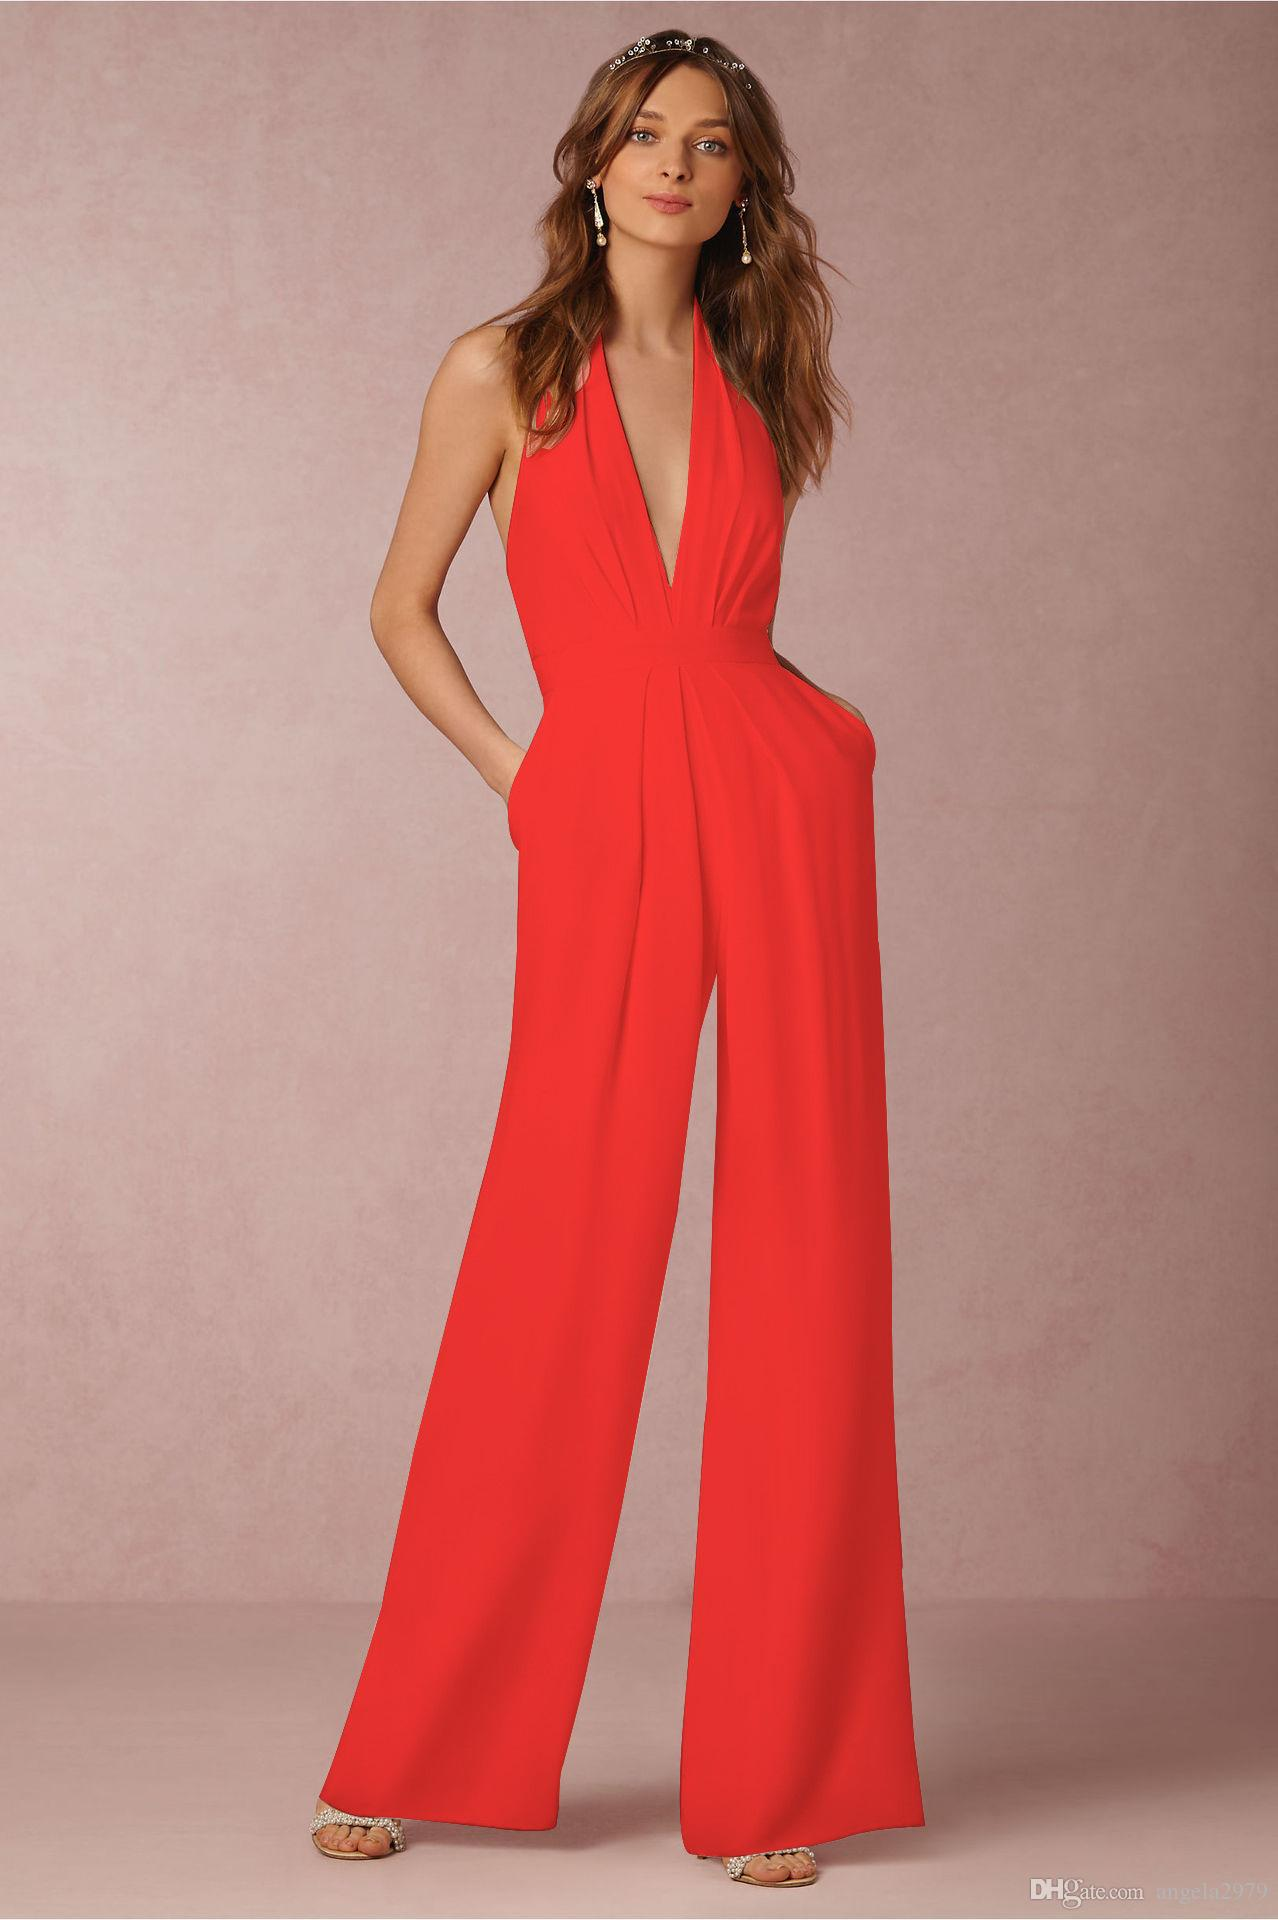 0542f55b68ce 2019 2017 Summer Loose Women Sleeveless Jumpsuits Sexy V Neck Backless  Halter Romper Bodycon Lady White Red Blue Jumpsuits Long Pant Jumpsuit 207  From ...